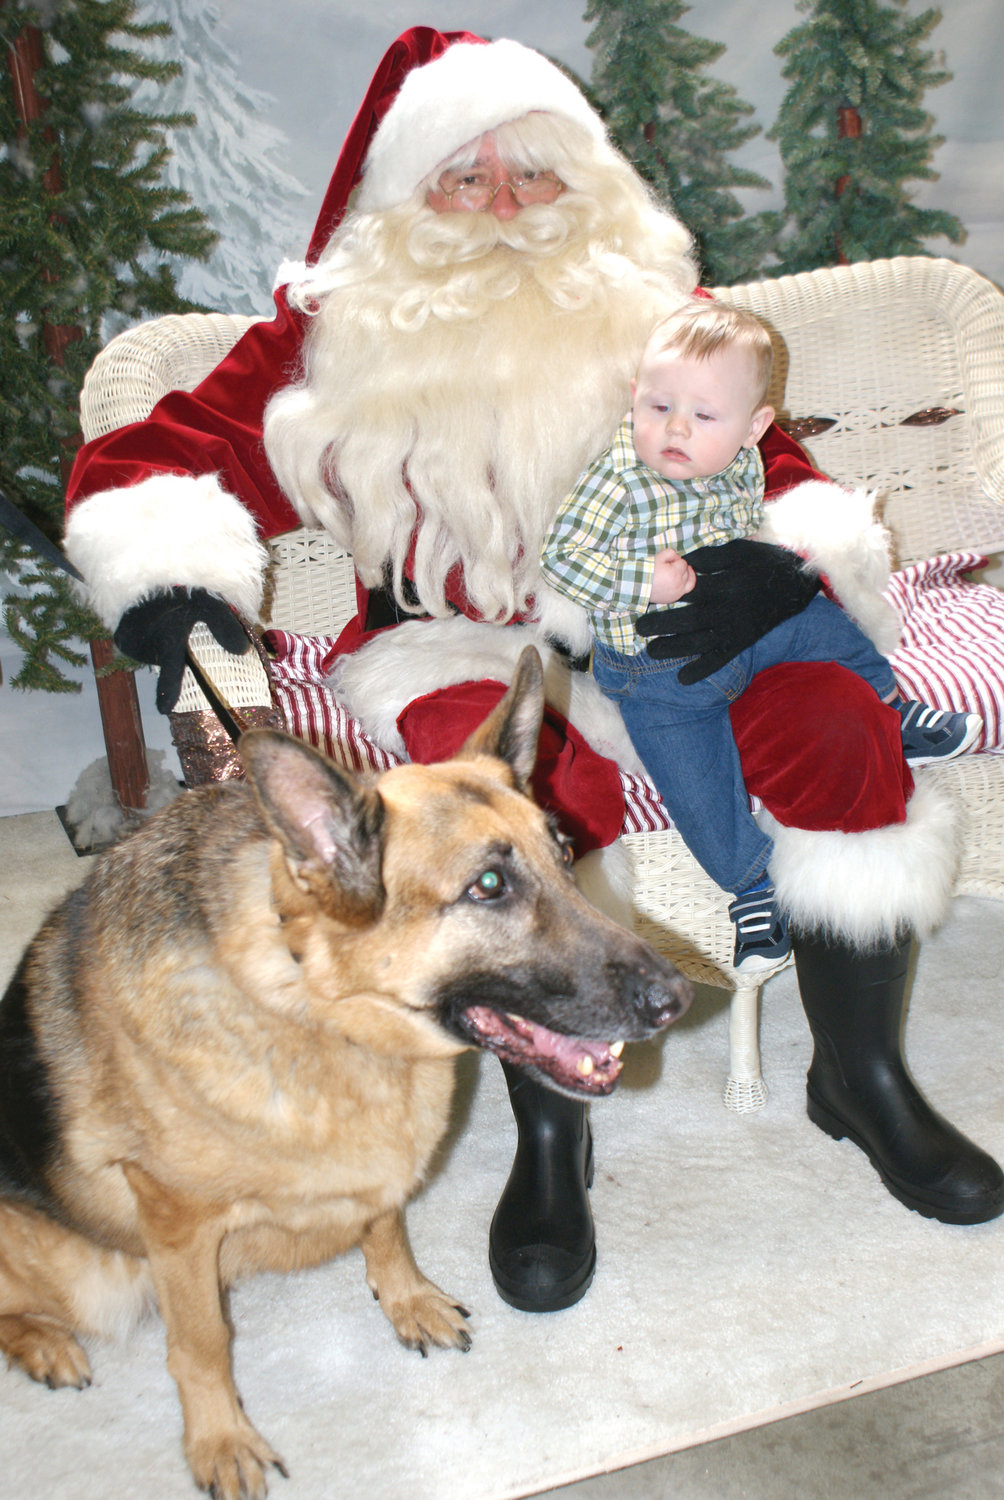 FIRST CHRISTMAS: Enjoying his first Christmas with his dog, Daisy, an 8-year-old German Shepard was Liam Driscoll, 8 months old, at Pet Supplies Plus in Garden City Center